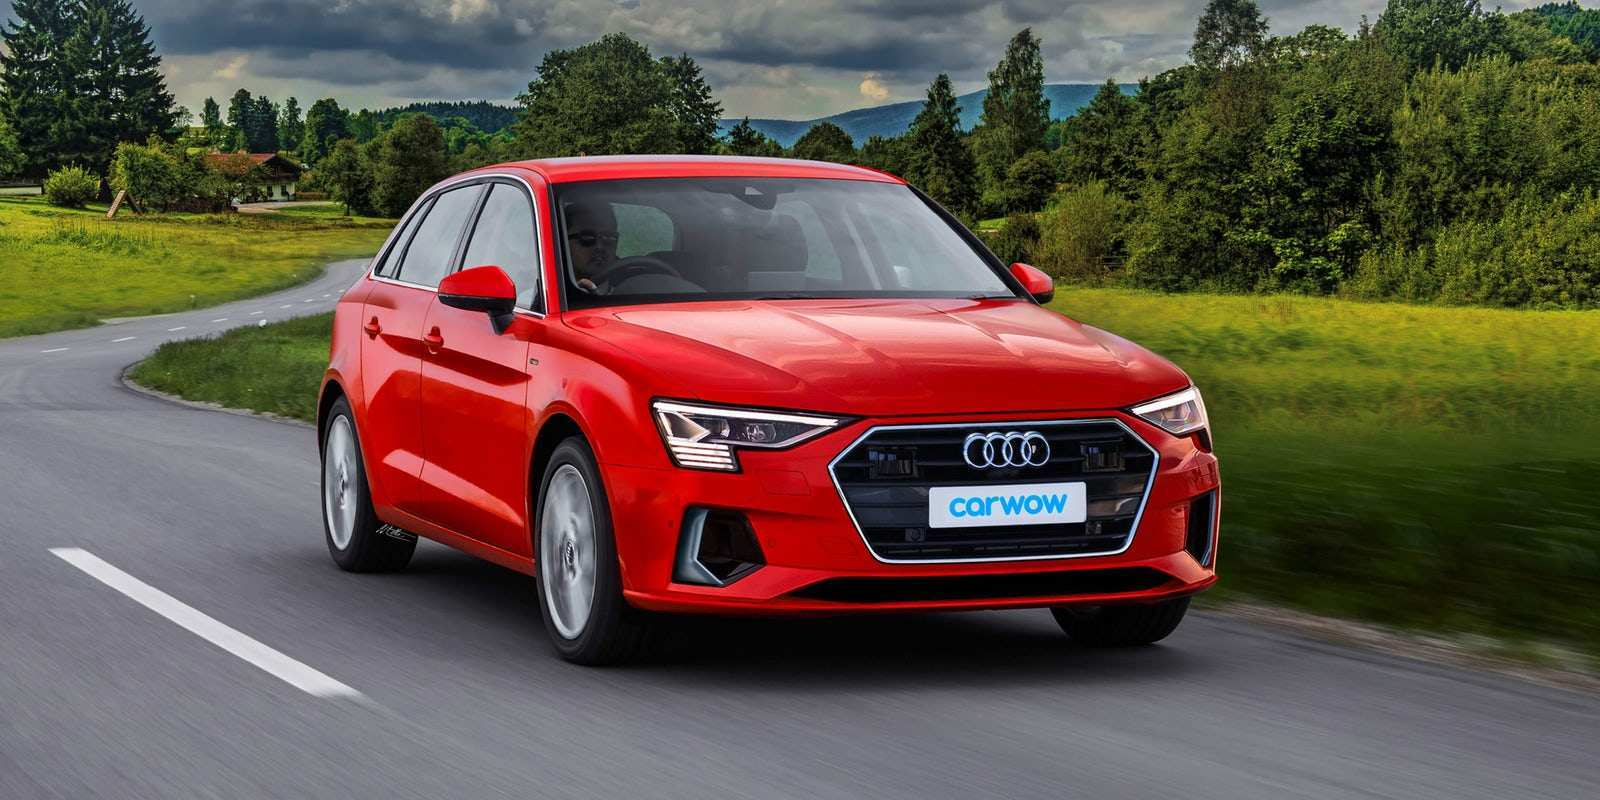 74 Great New 2019 Audi Build And Price Redesign And Price Pricing for New 2019 Audi Build And Price Redesign And Price